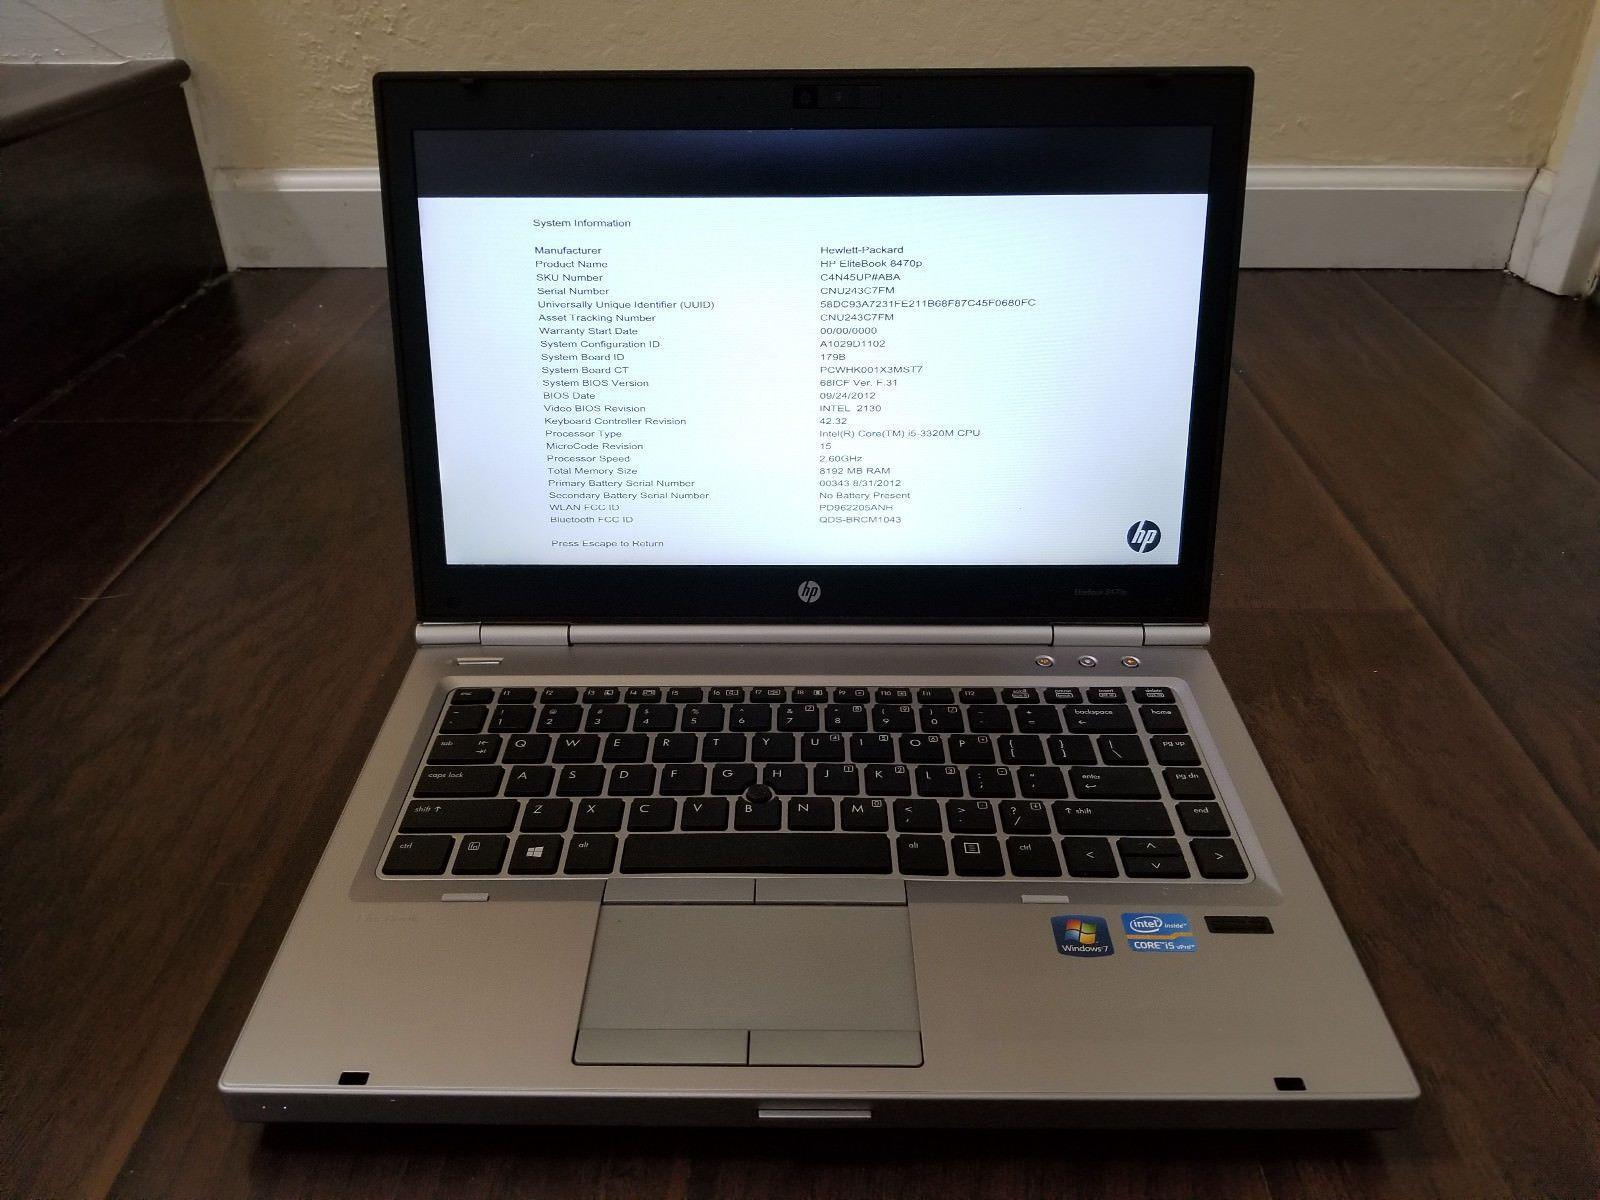 HP EliteBook 8470p Laptop Intel Core i5 3rd Gen 2 60GHz 8GB